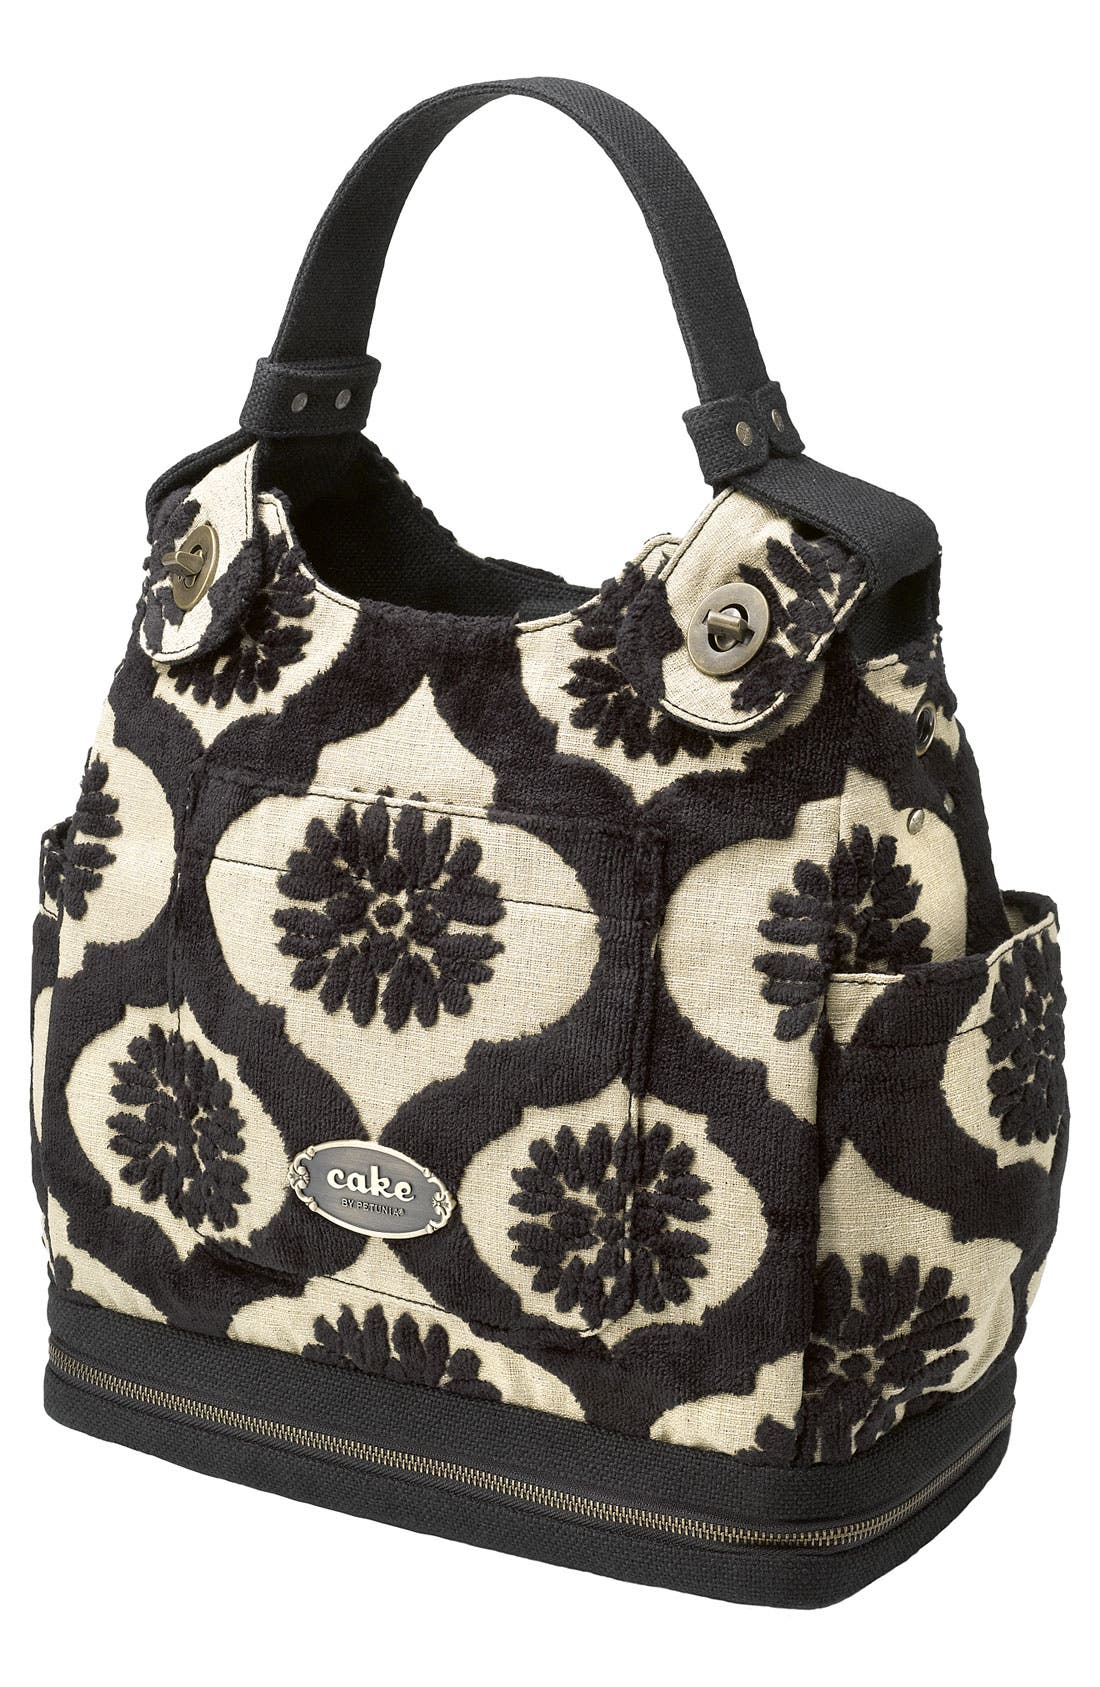 Alternate Image 1 Selected - Petunia Pickle Bottom 'Cake Society' Convertible Baby Bag